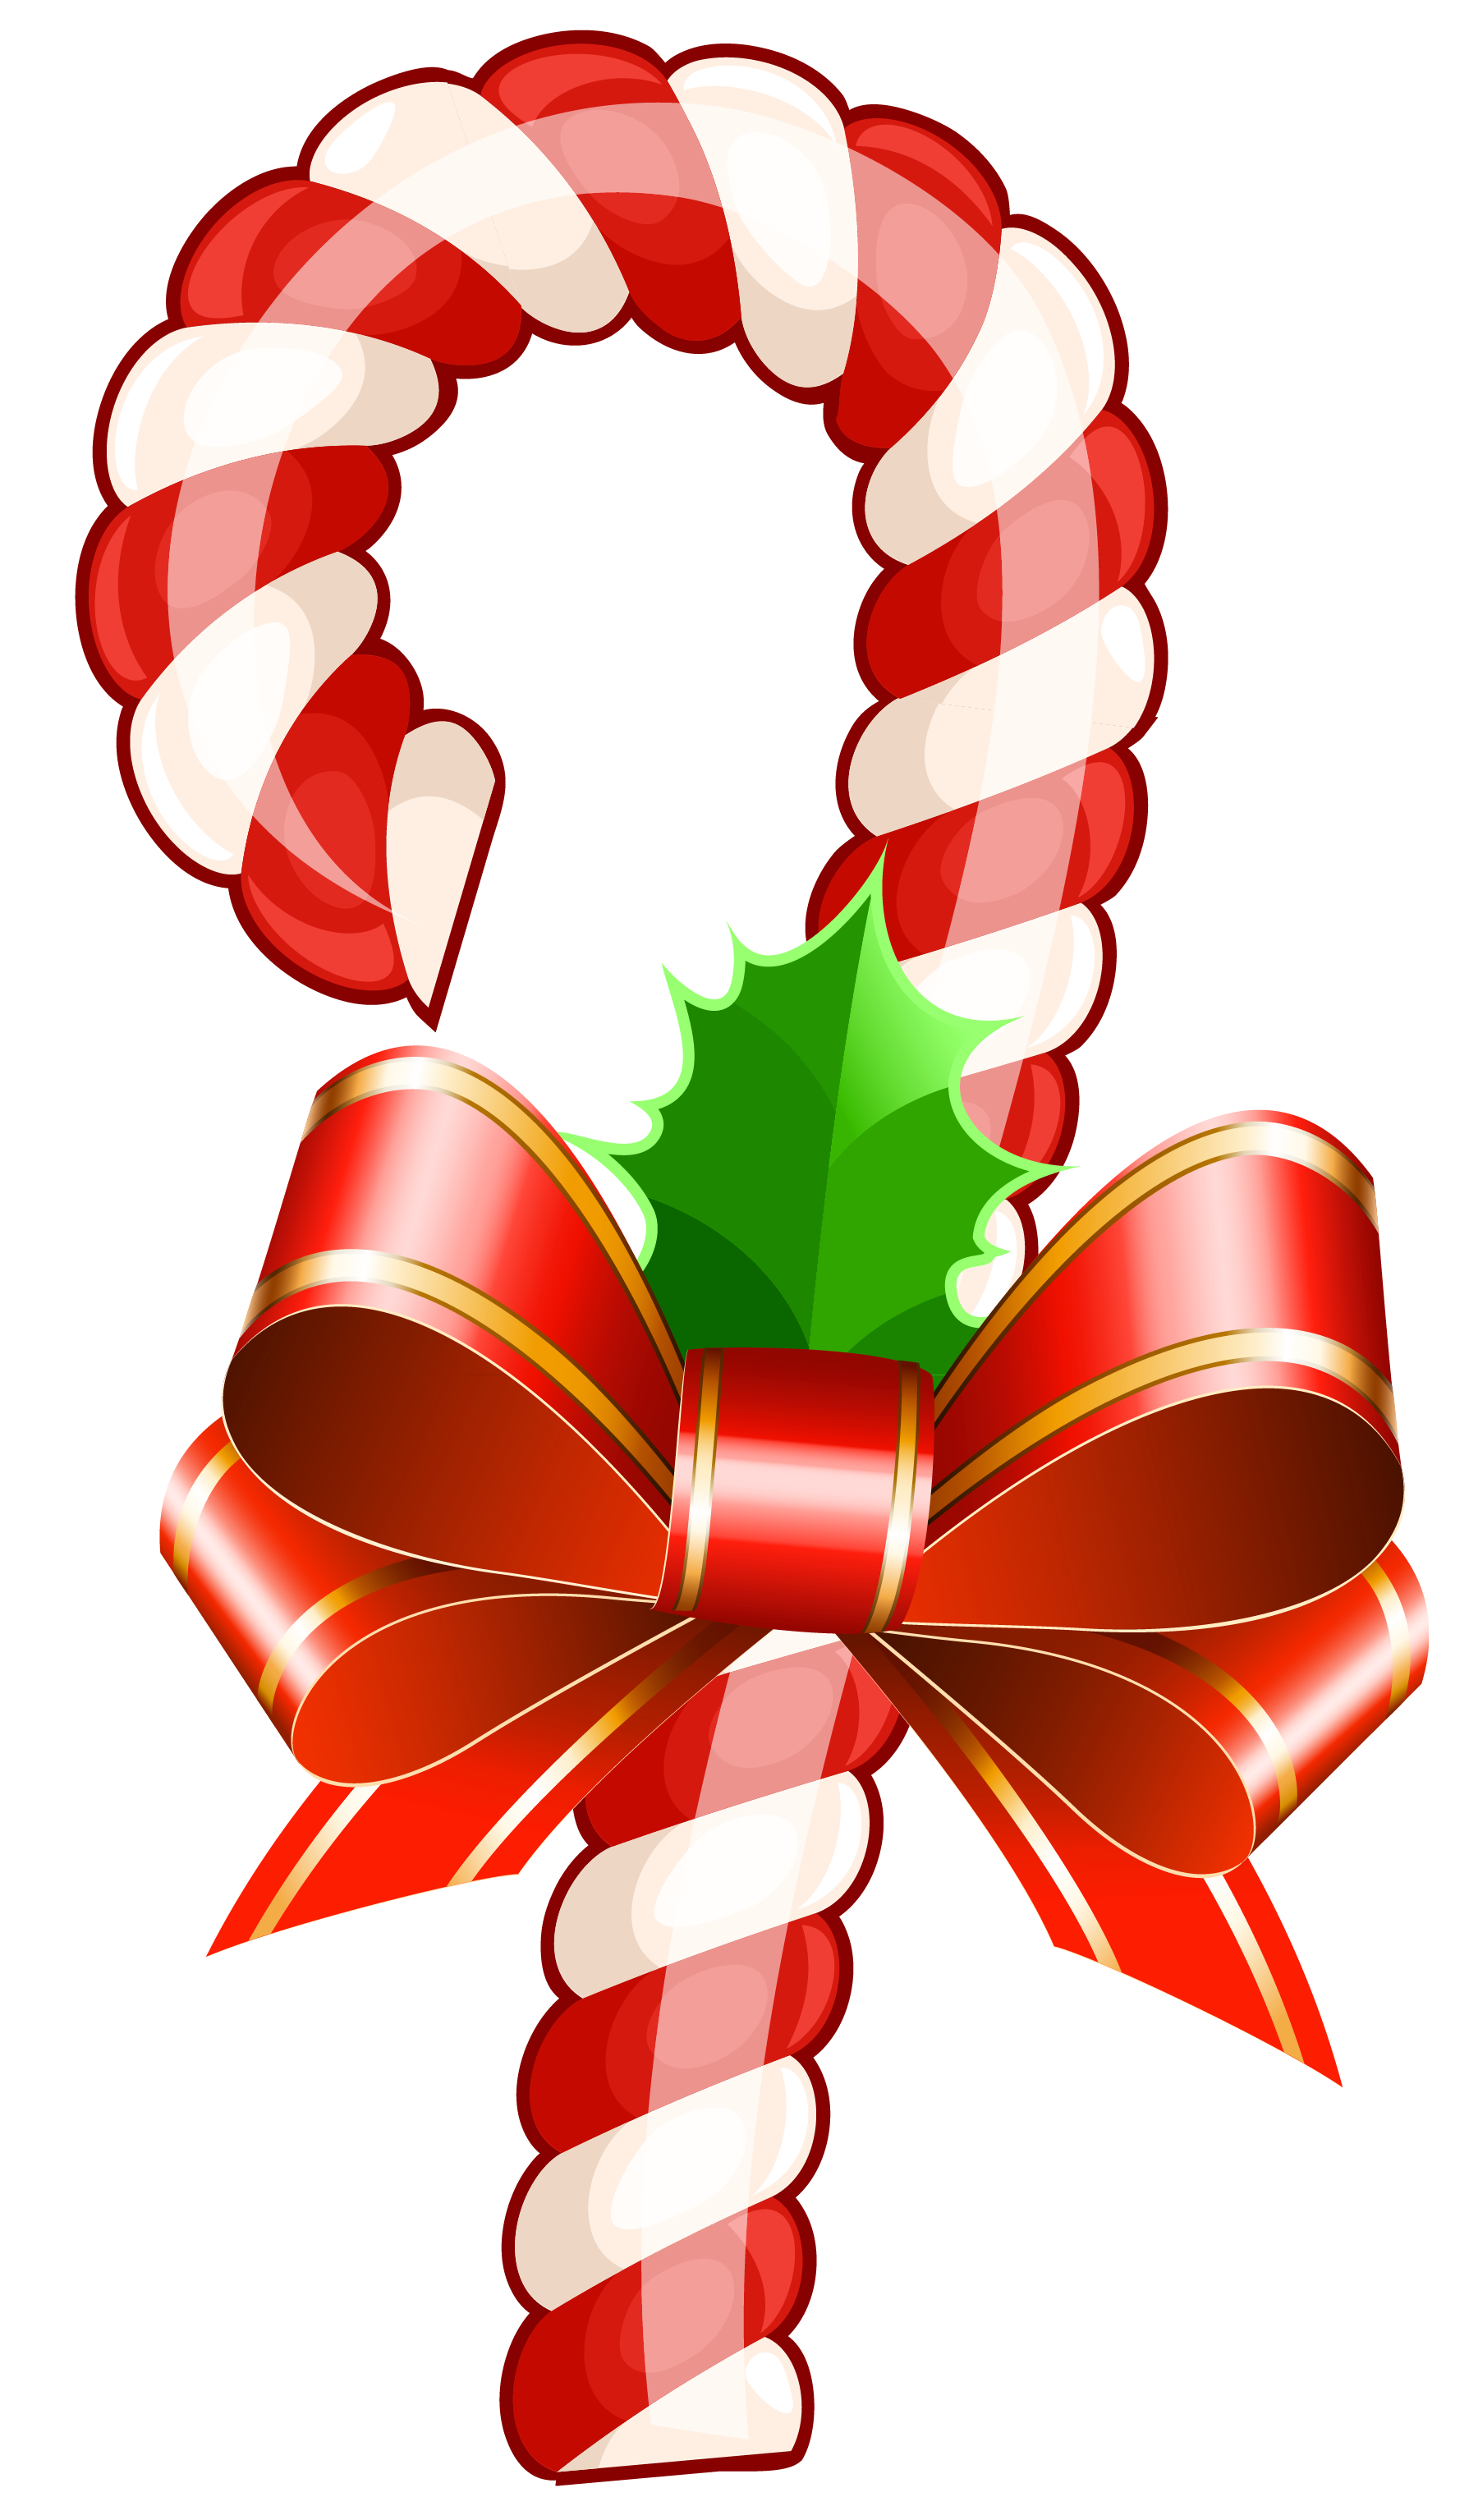 Library clipart christmas. Large transparent candy cane